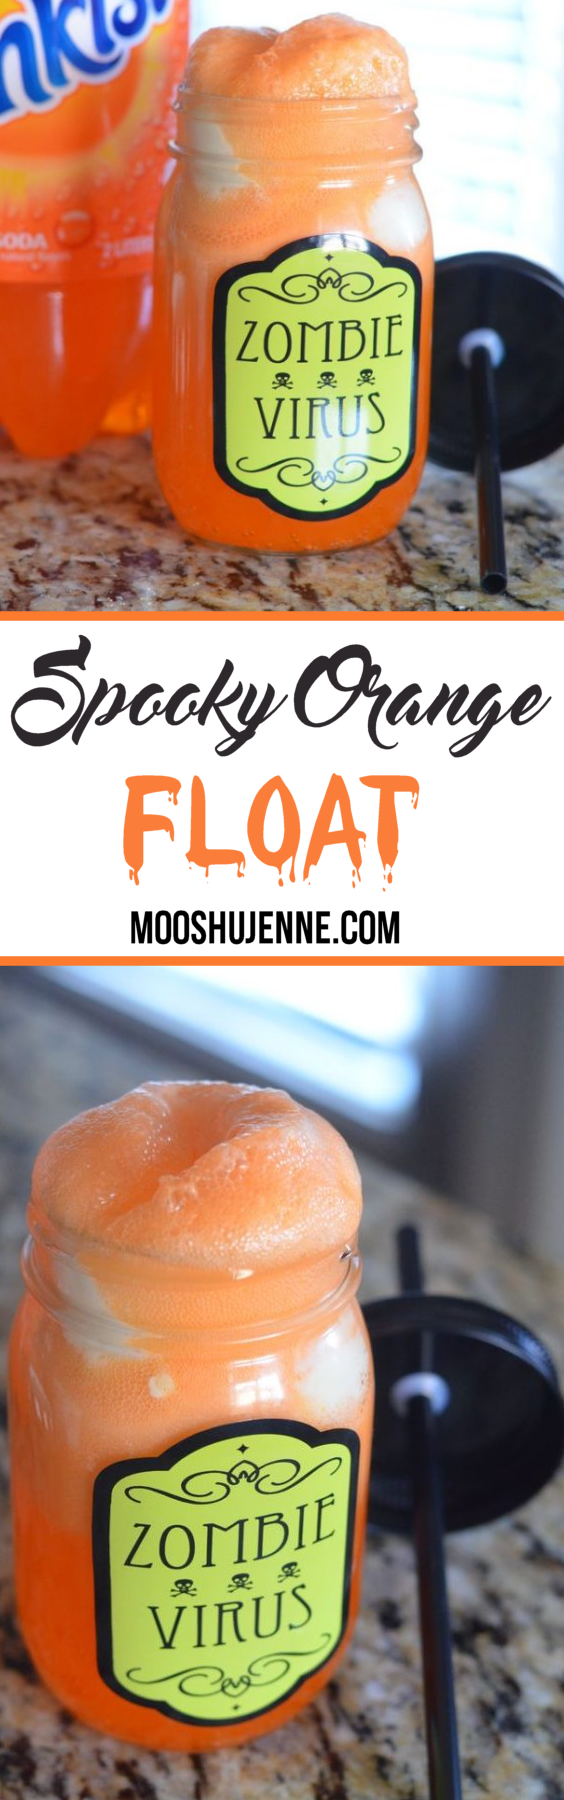 Spooky Orange Float. Can you imagine all the ways to decorate or fill said pumpkin? I know I can! I just love Halloween though. This is going to be so addicting for me.